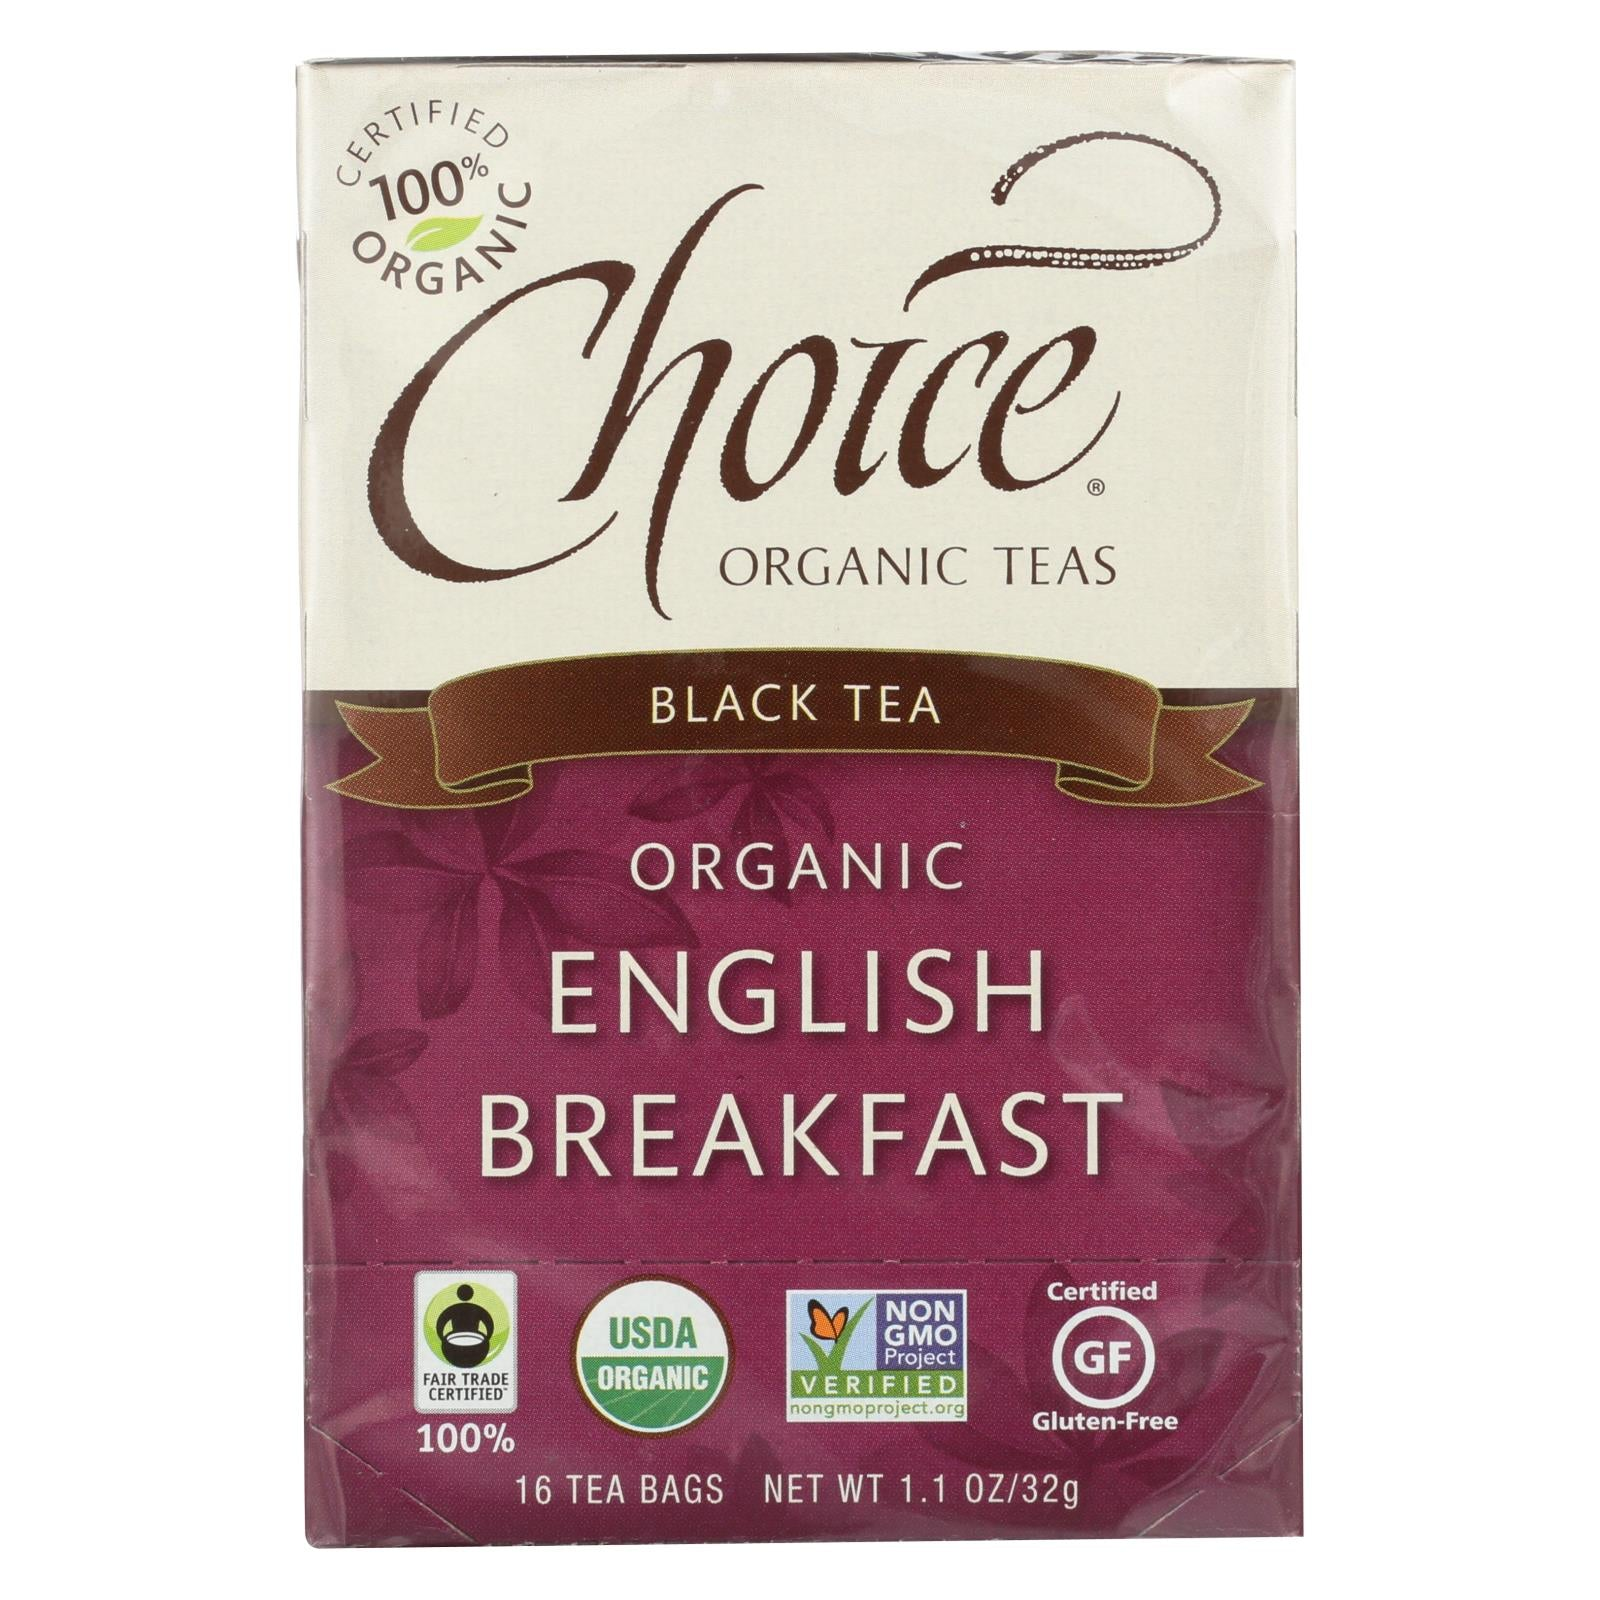 Buy Choice Organic Teas English Breakfast Tea - 16 Tea Bags - Case of 6 - Black Tea from Veroeco.com